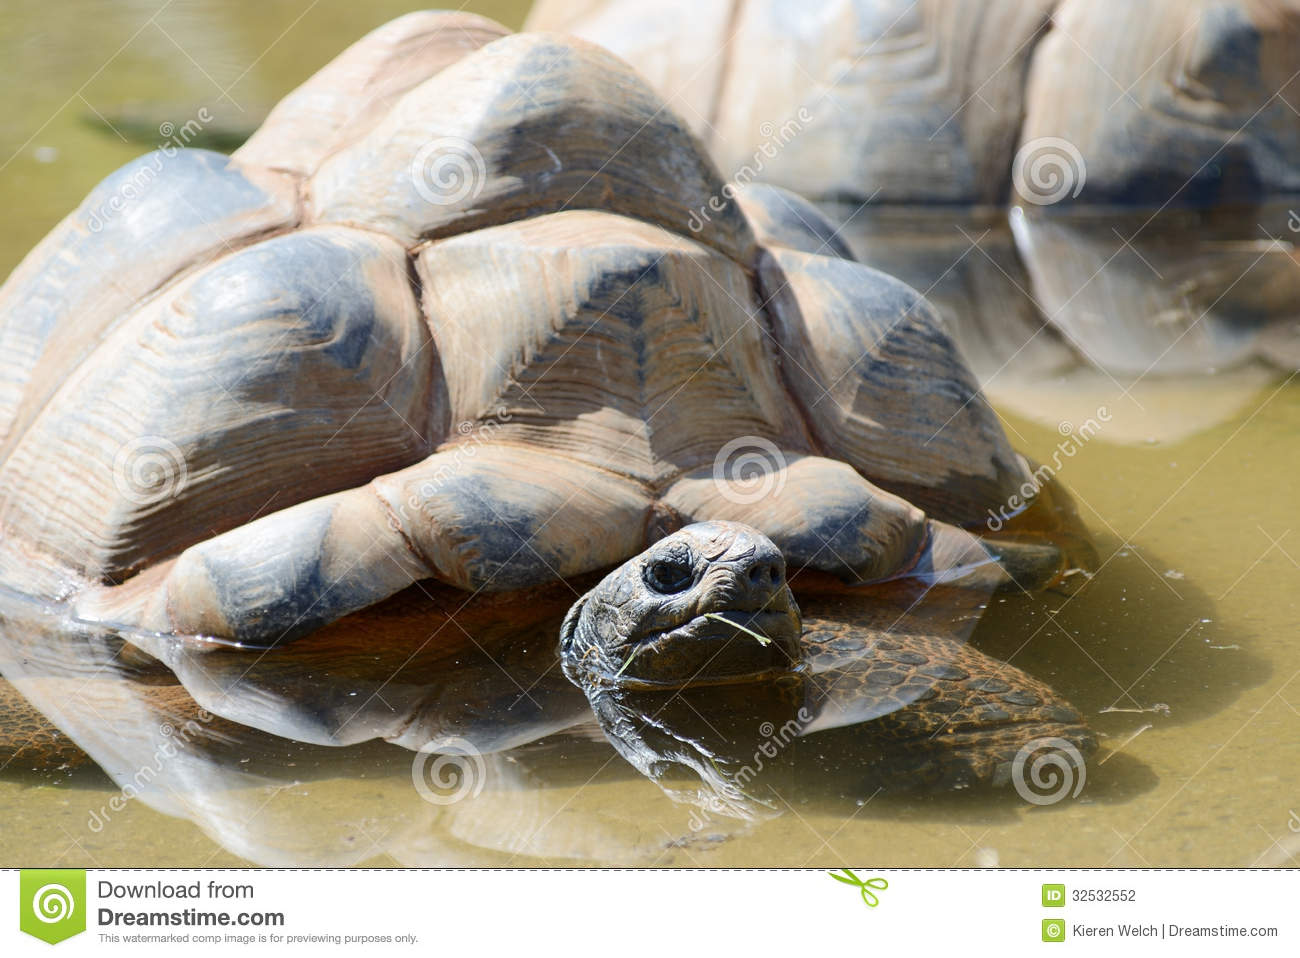 Giant tortoise keeping cool on a sunny day in a pool of water.